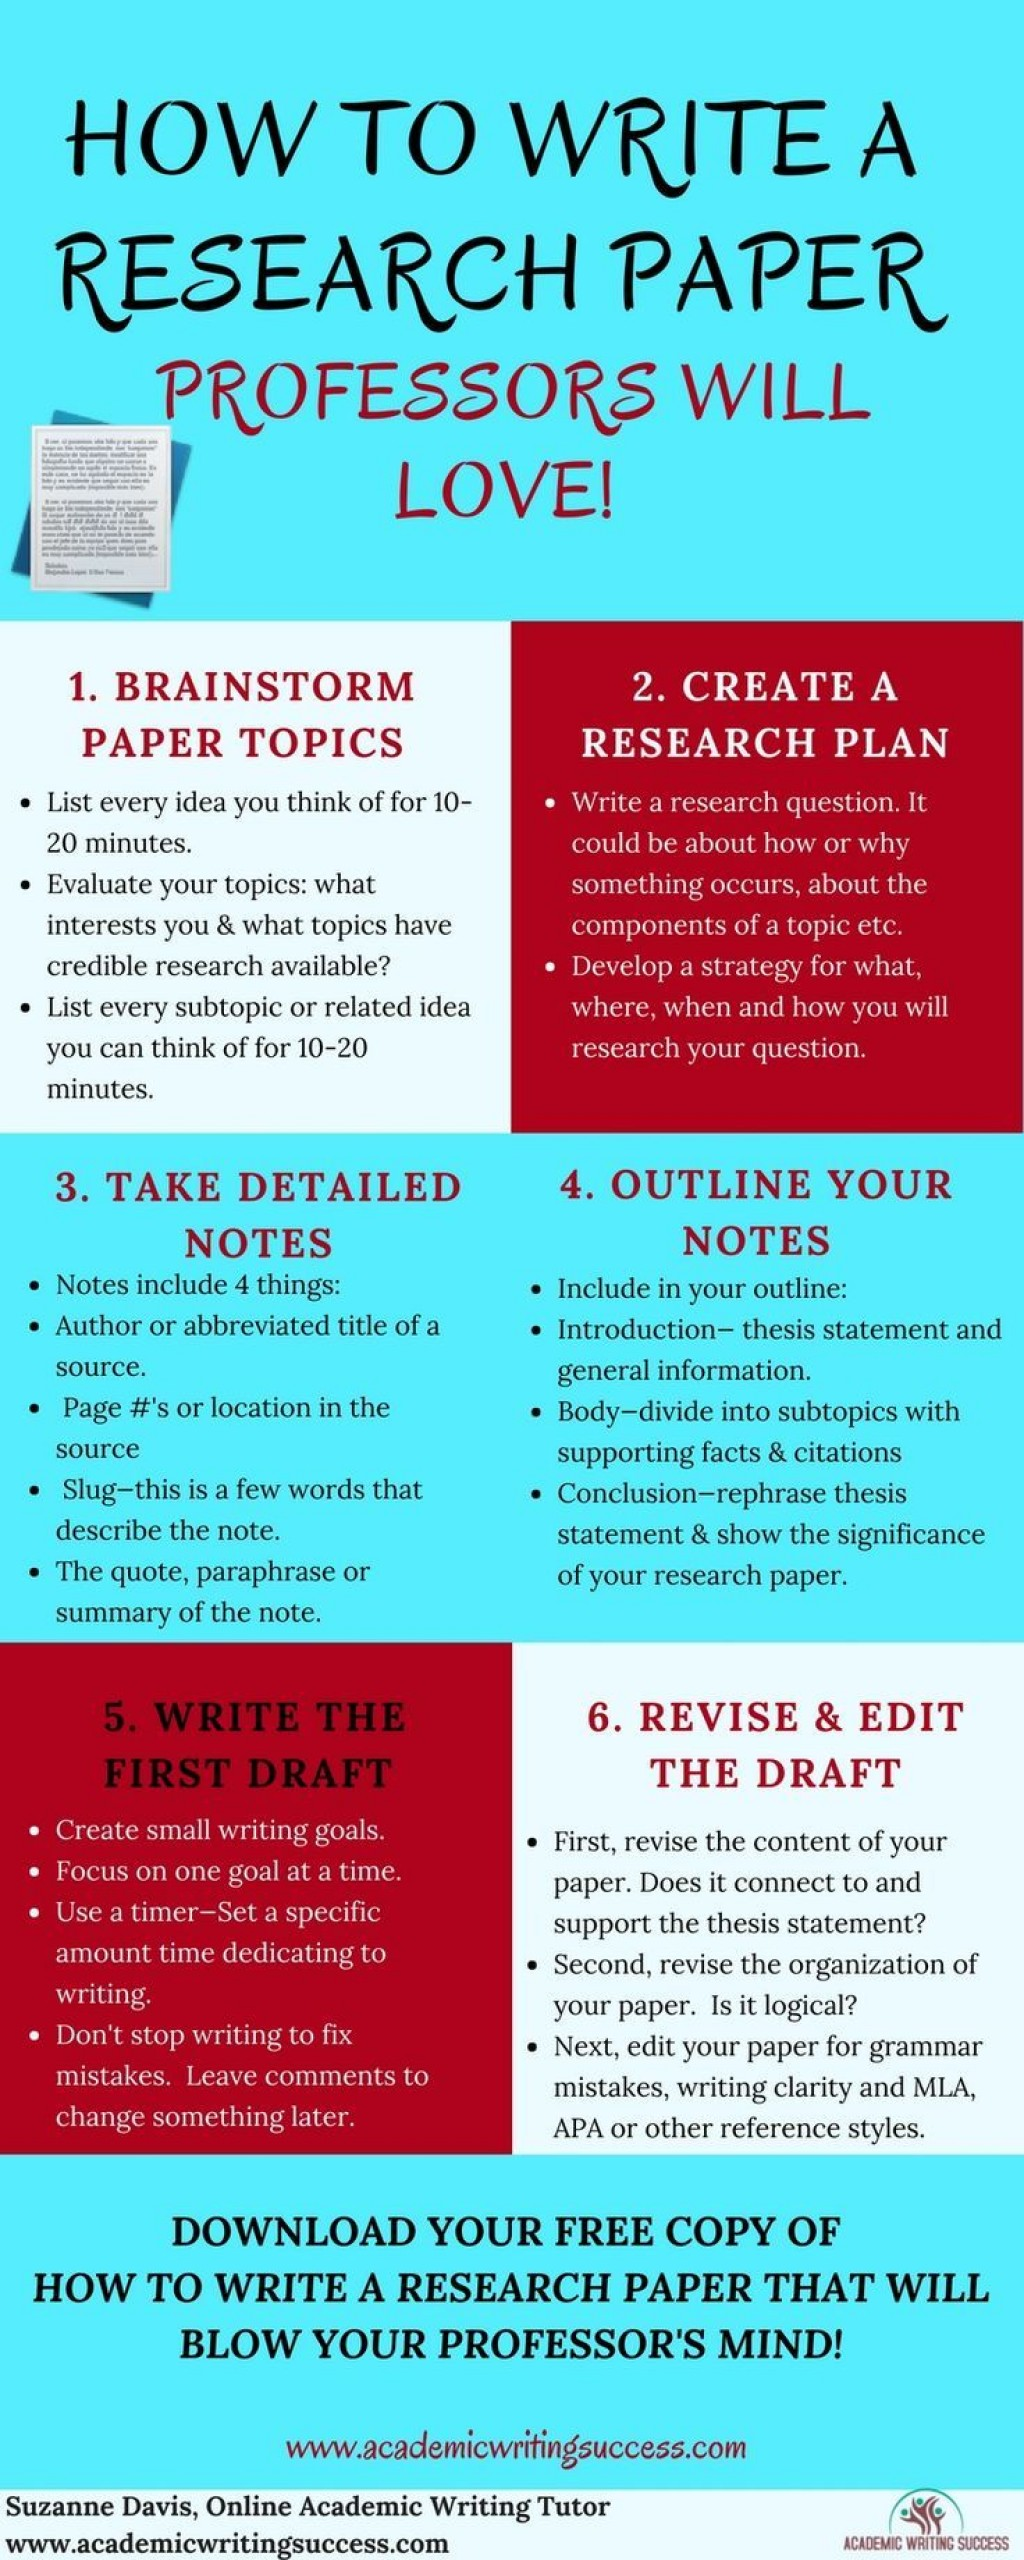 007 Research Paper Steps To Writing Fearsome A In Apa Format Mla Style Large